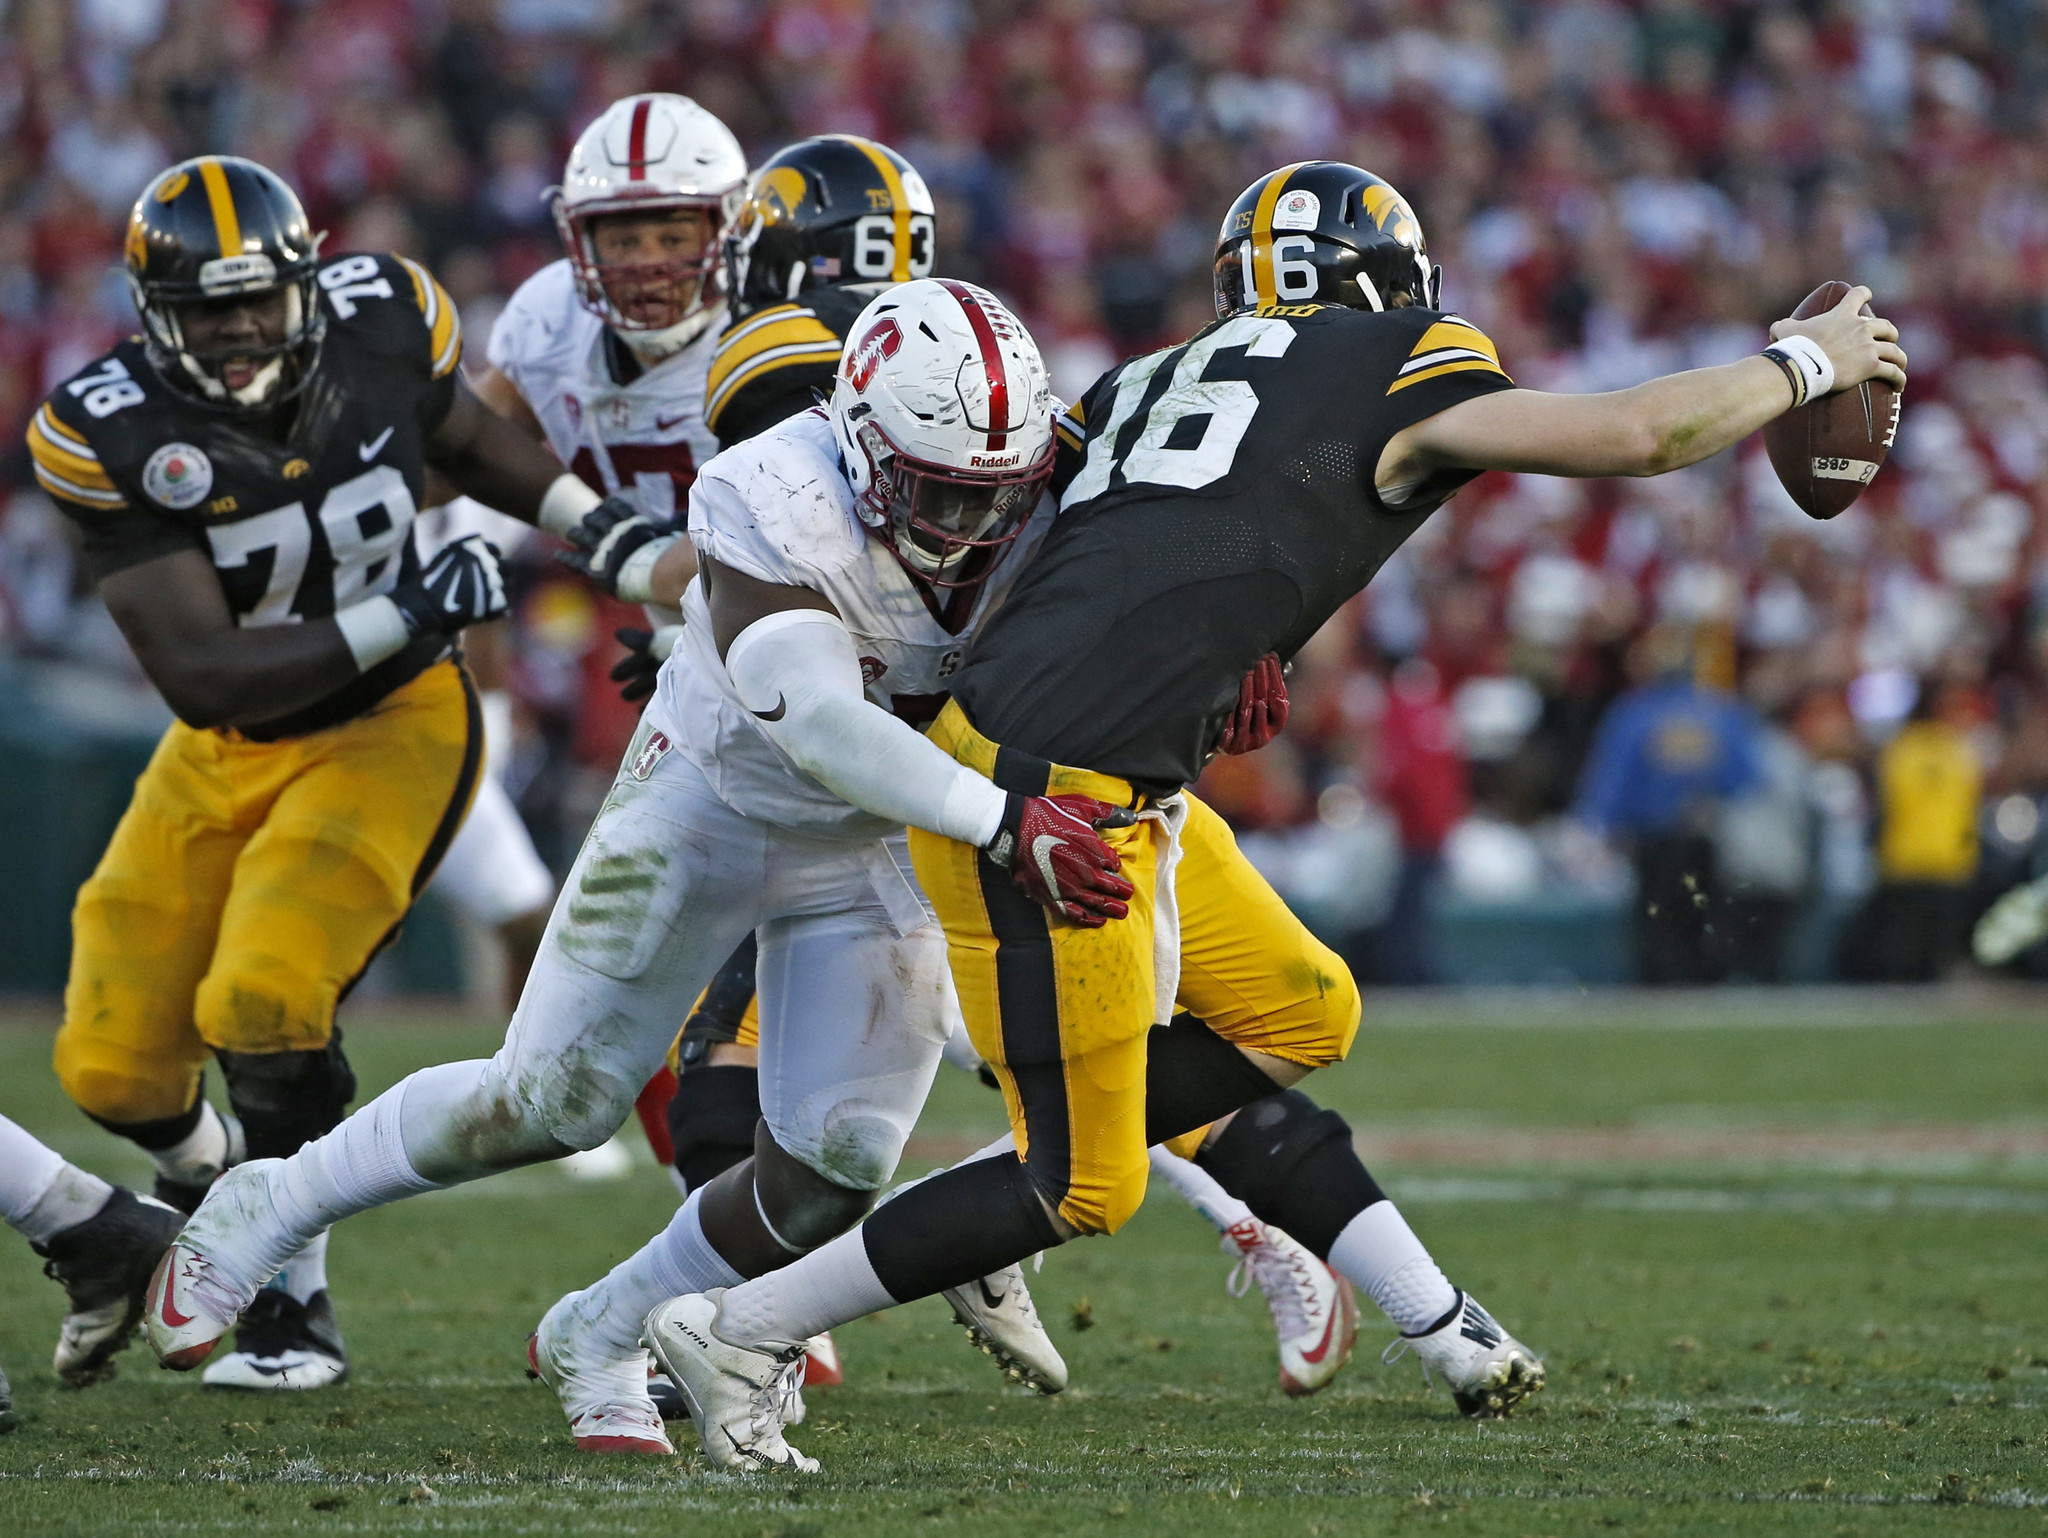 C.J. Beathard is sacked by Stanford defensive end Aziz Shittu. (Lenny Ignelzi / AP Photo)